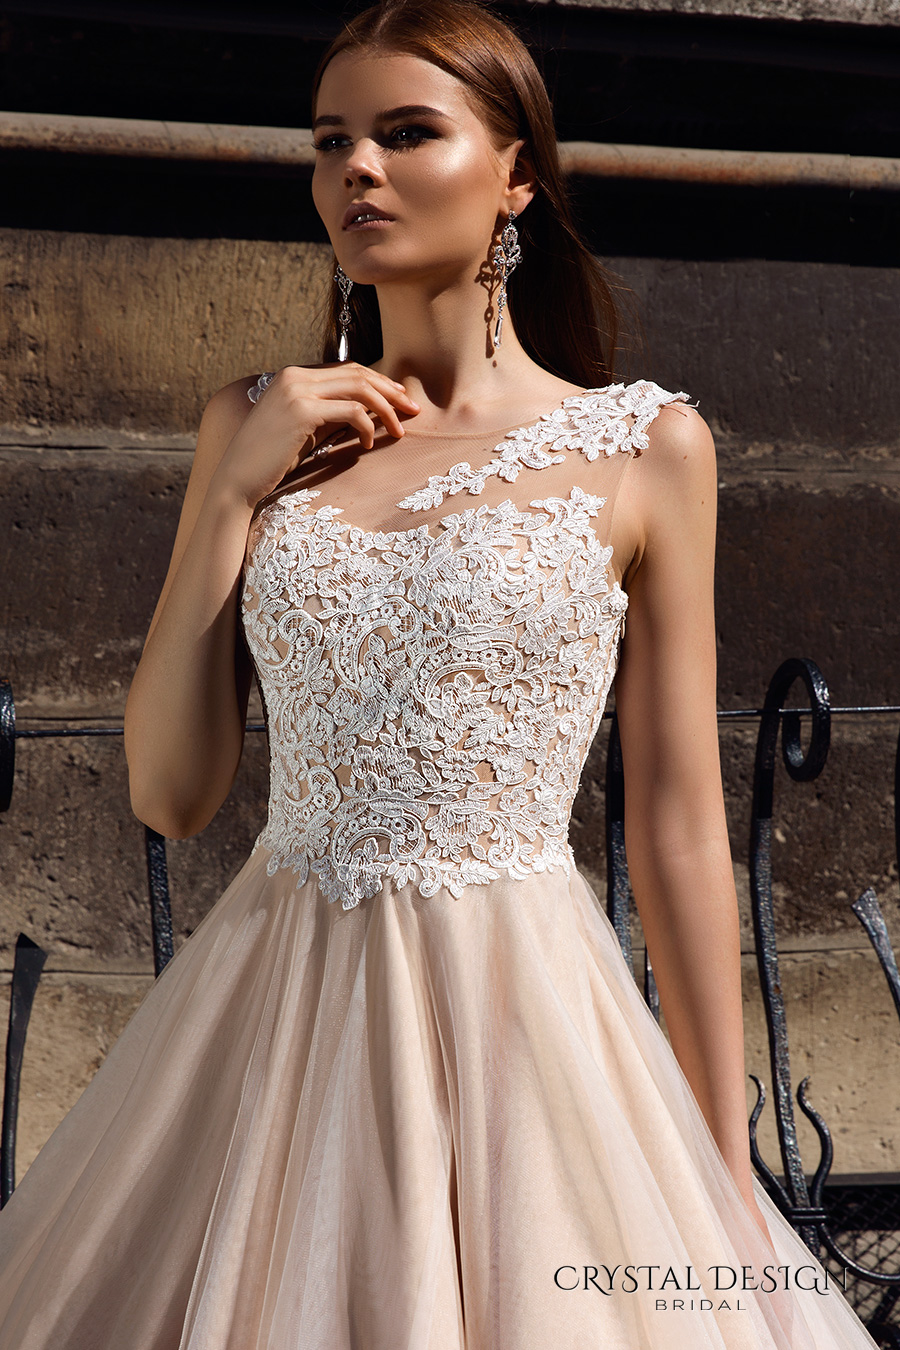 Bridal gowns with color wedding dresses with color White wedding gown with red roses on the dress